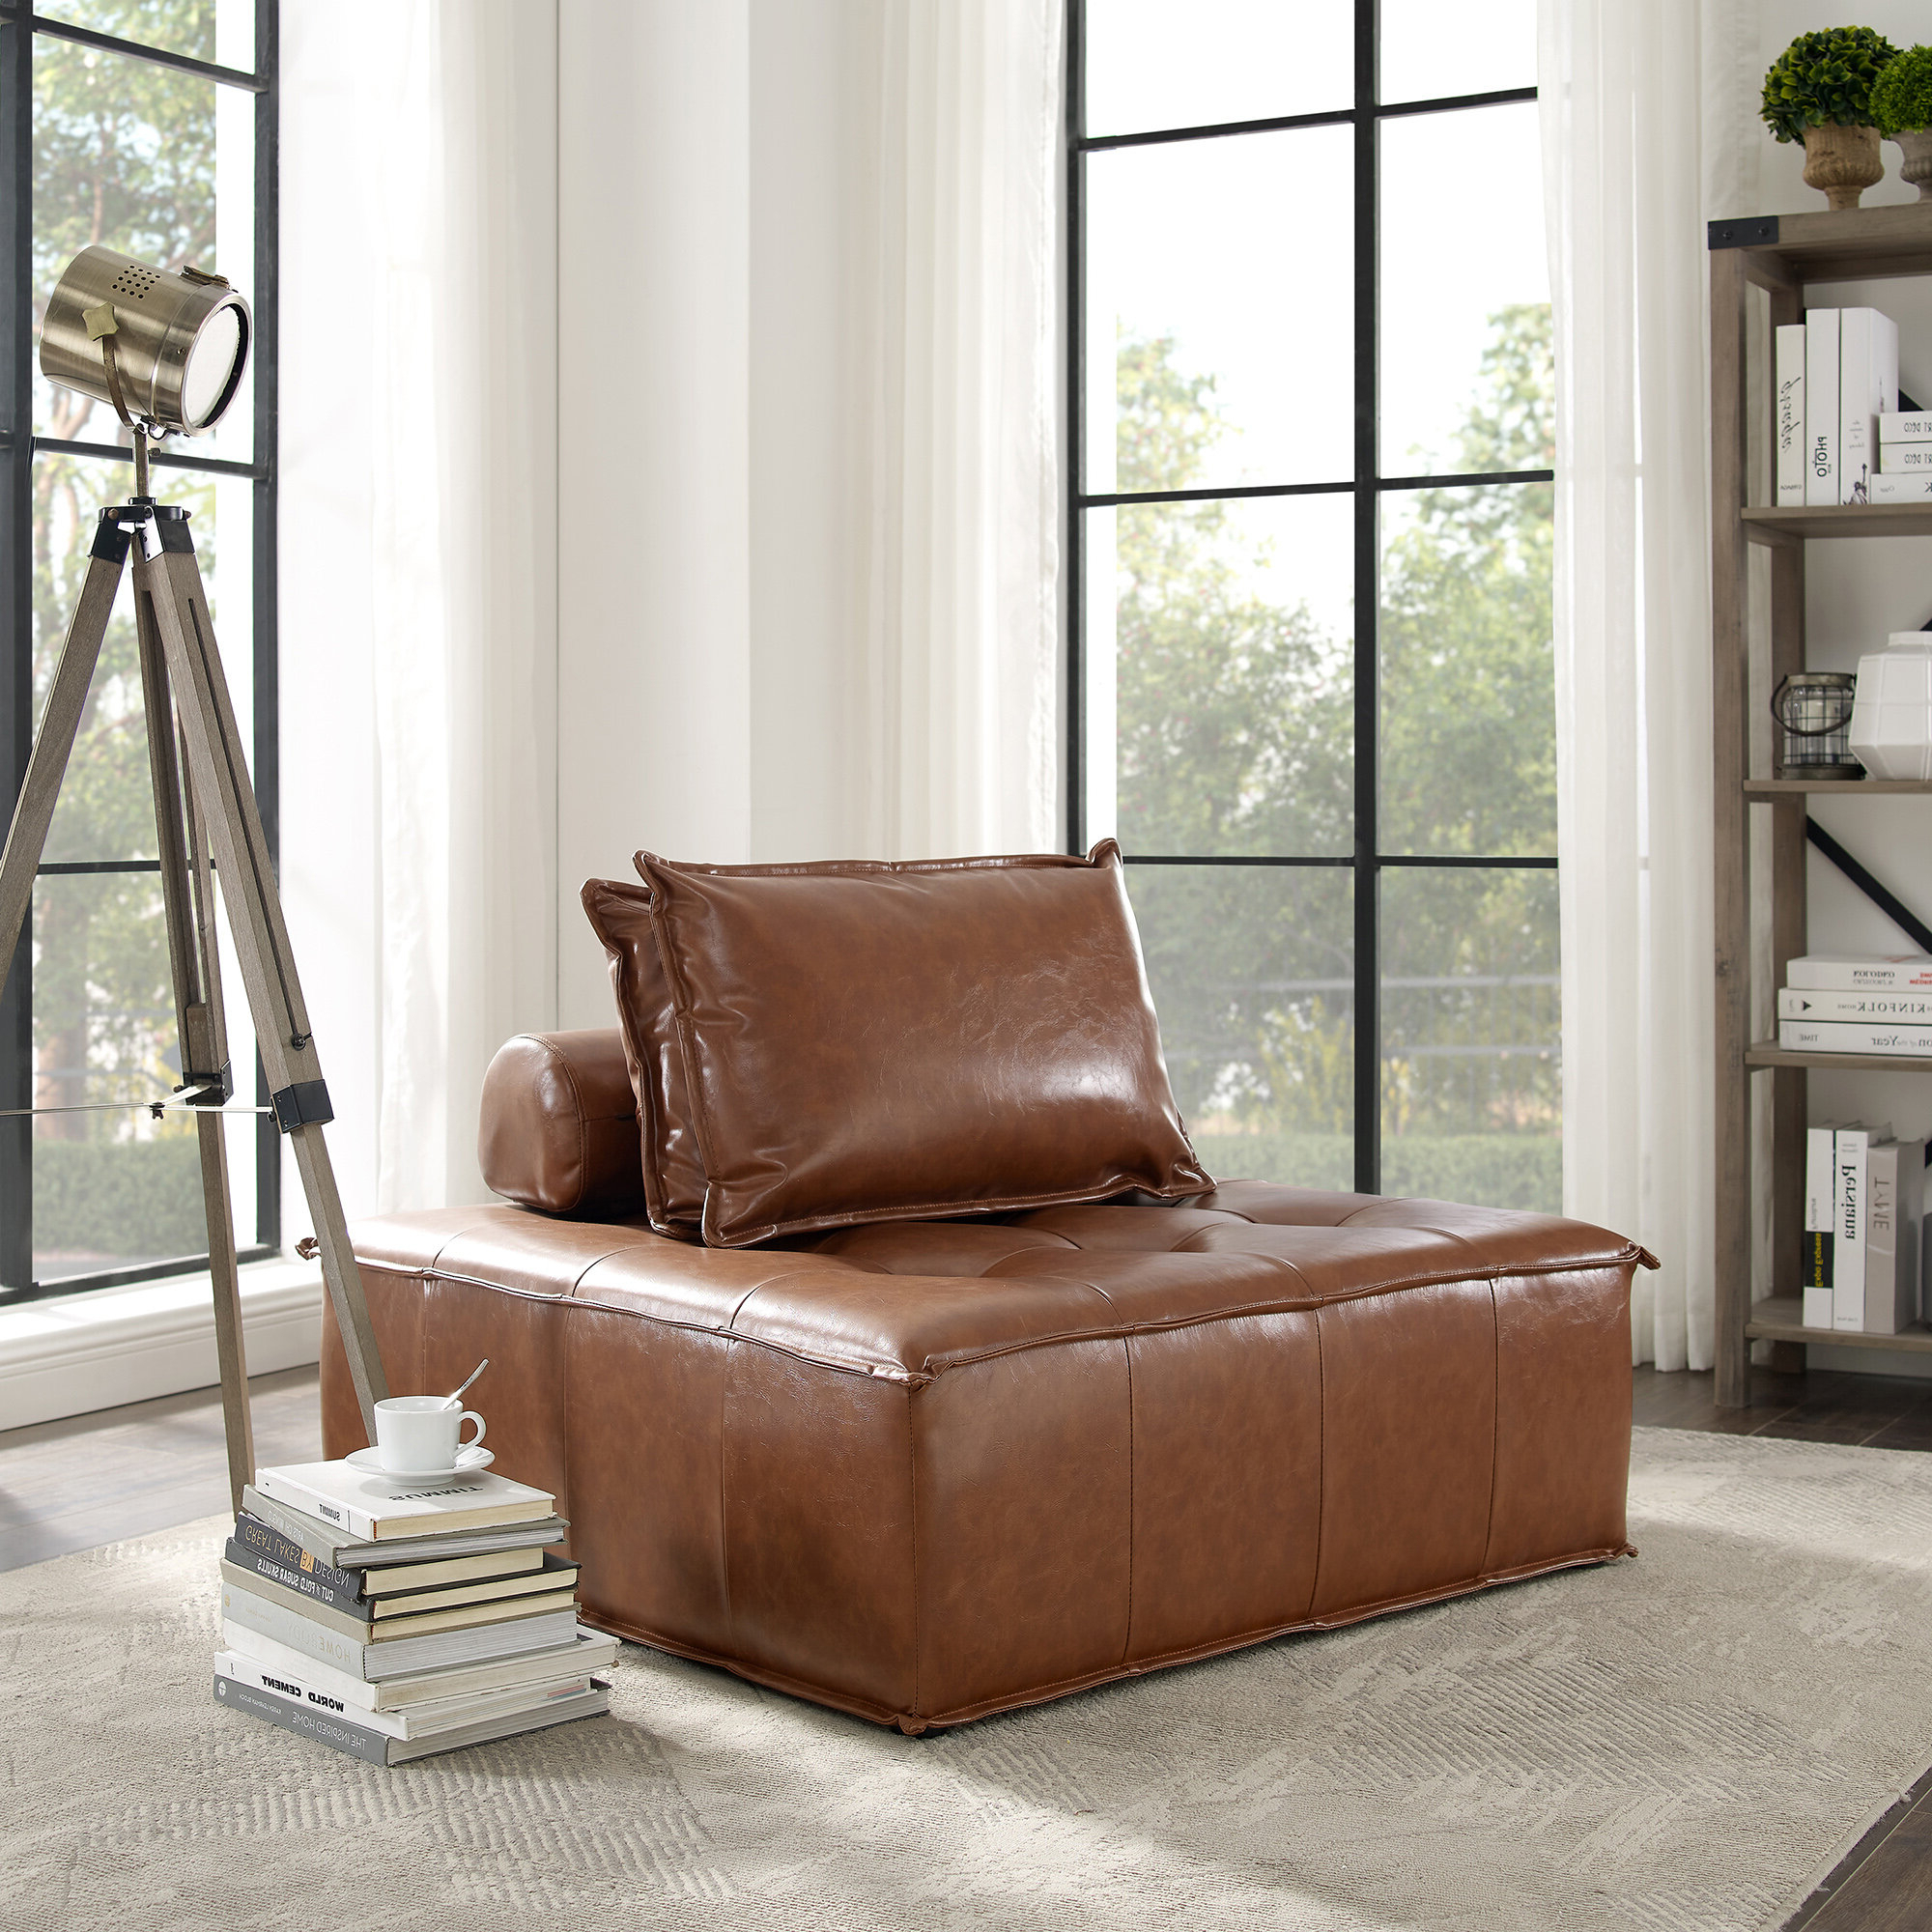 Most Current Convertible Solid Accent Chairs You'll Love In 2020 In Perz Tufted Faux Leather Convertible Chairs (View 7 of 20)